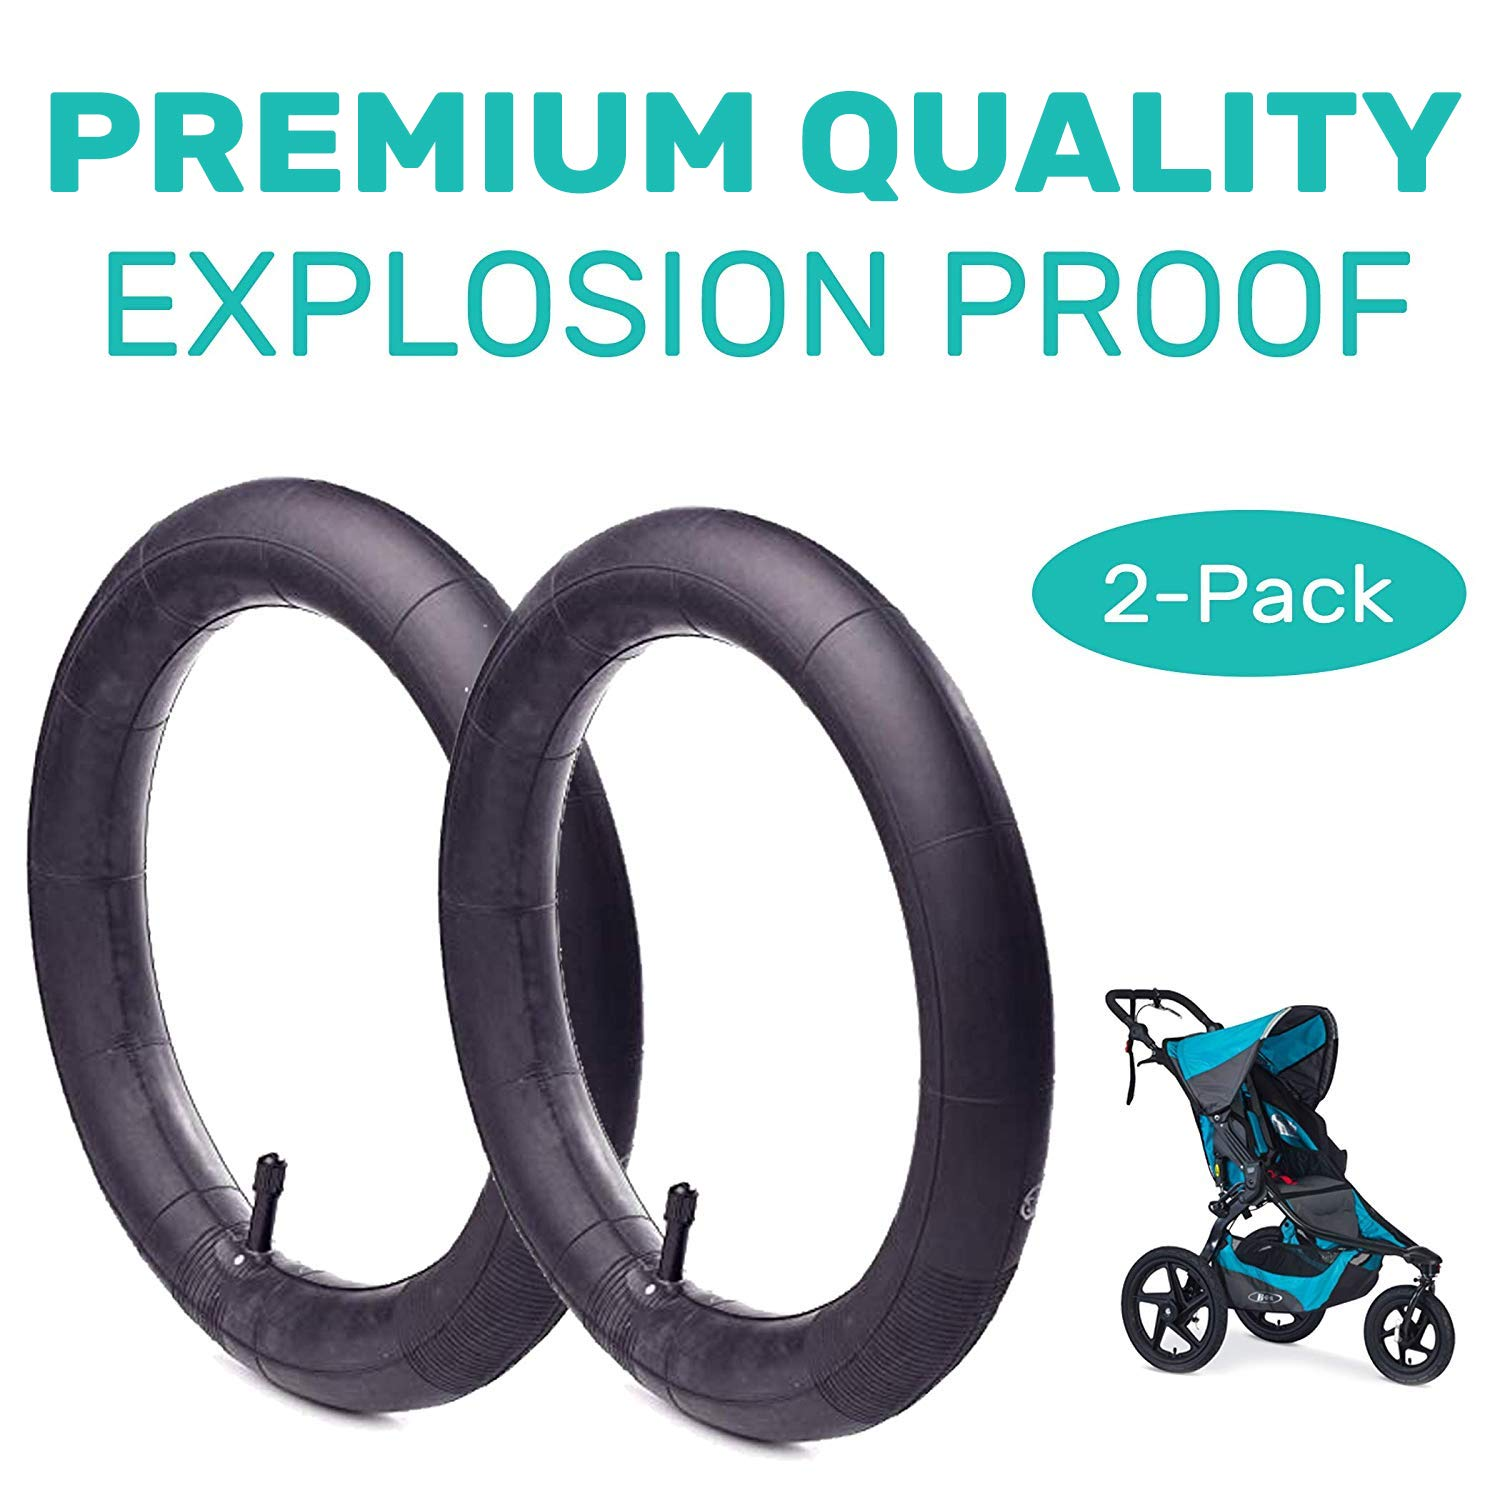 16'' x 1.75/2.15 Back Wheel Replacement Inner Tubes (2-Pack) for BoB Revolution SE/Pro/Flex/SU/Ironman - Made from BPA/Latex Free Premium Quality Butyl Rubber